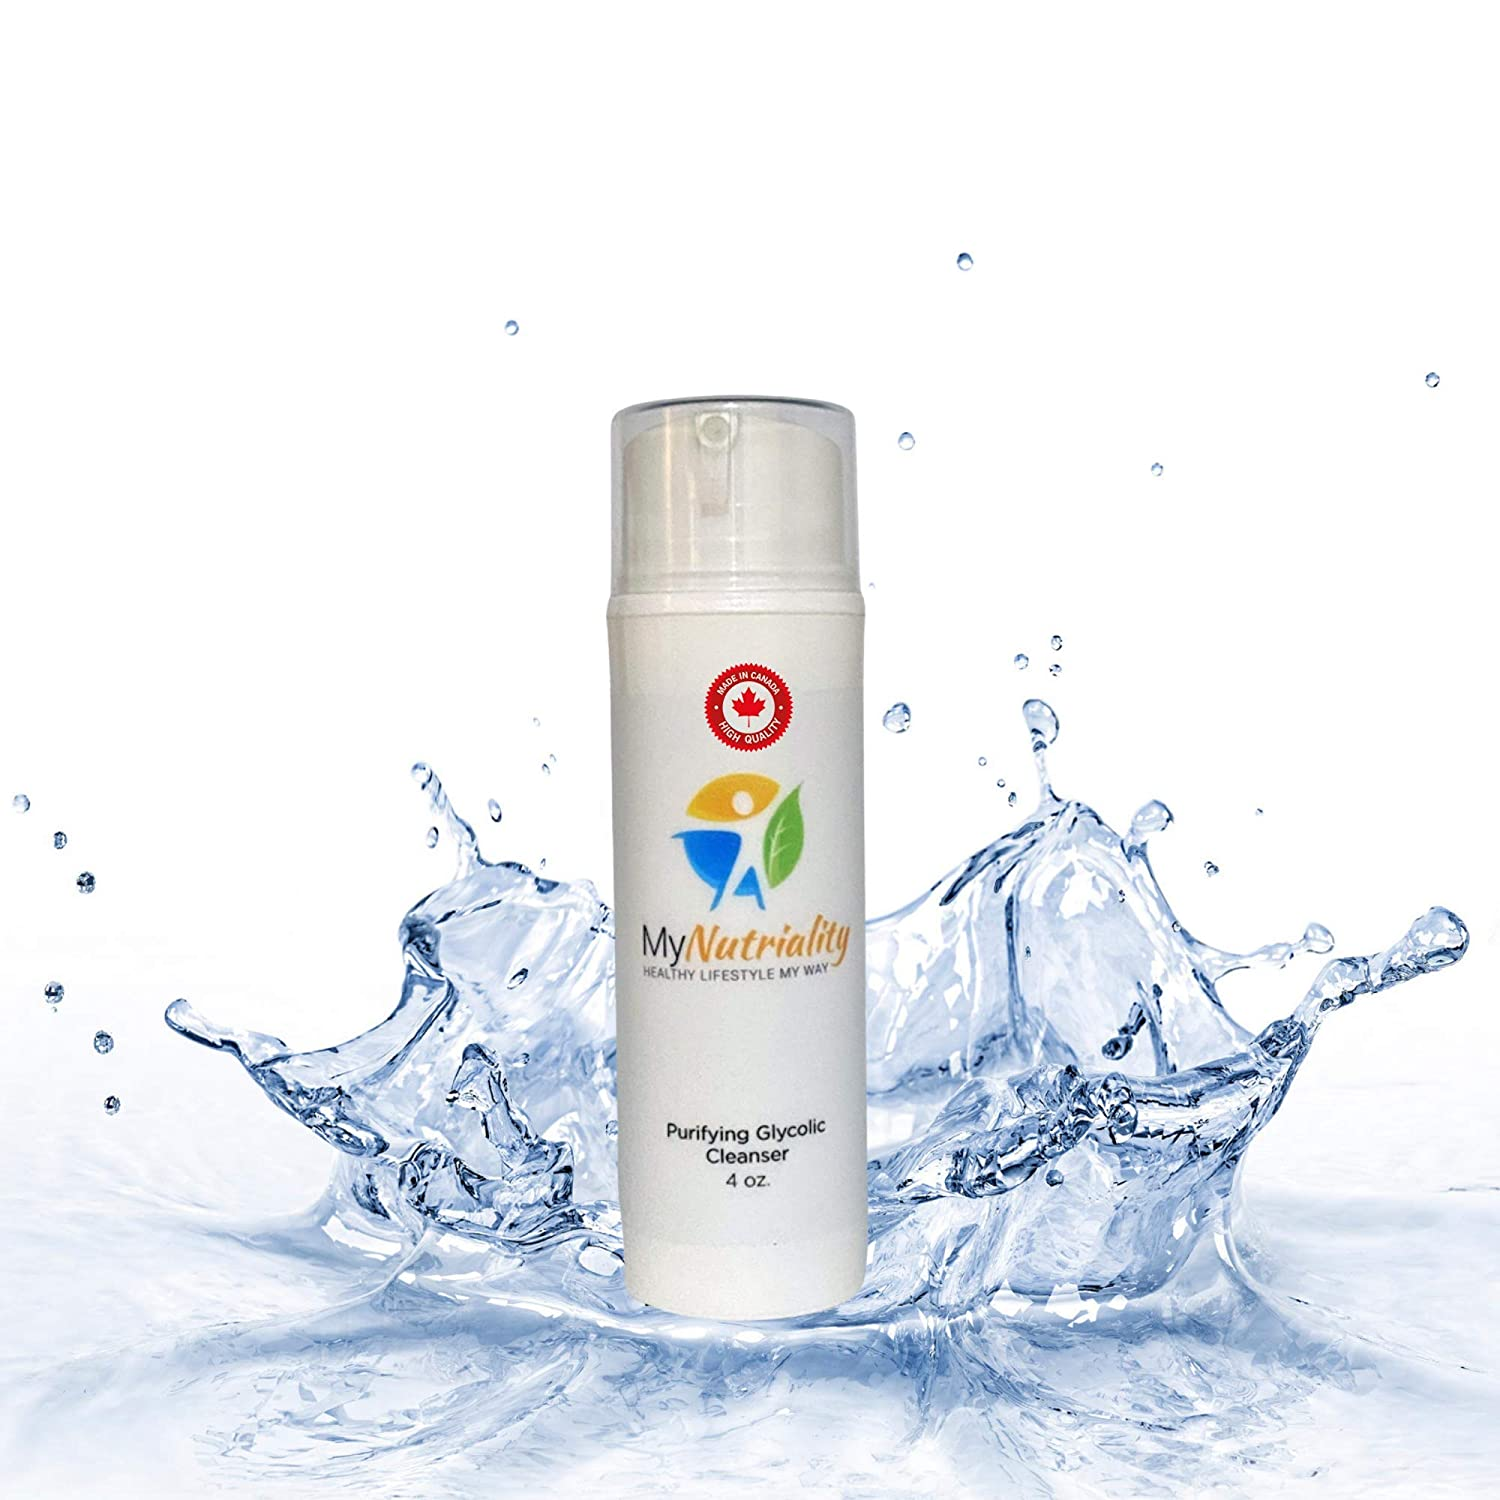 My Nutriality Purifying Fashionable Glycolic Cleanser - Skin Sensitive Atlanta Mall Clean